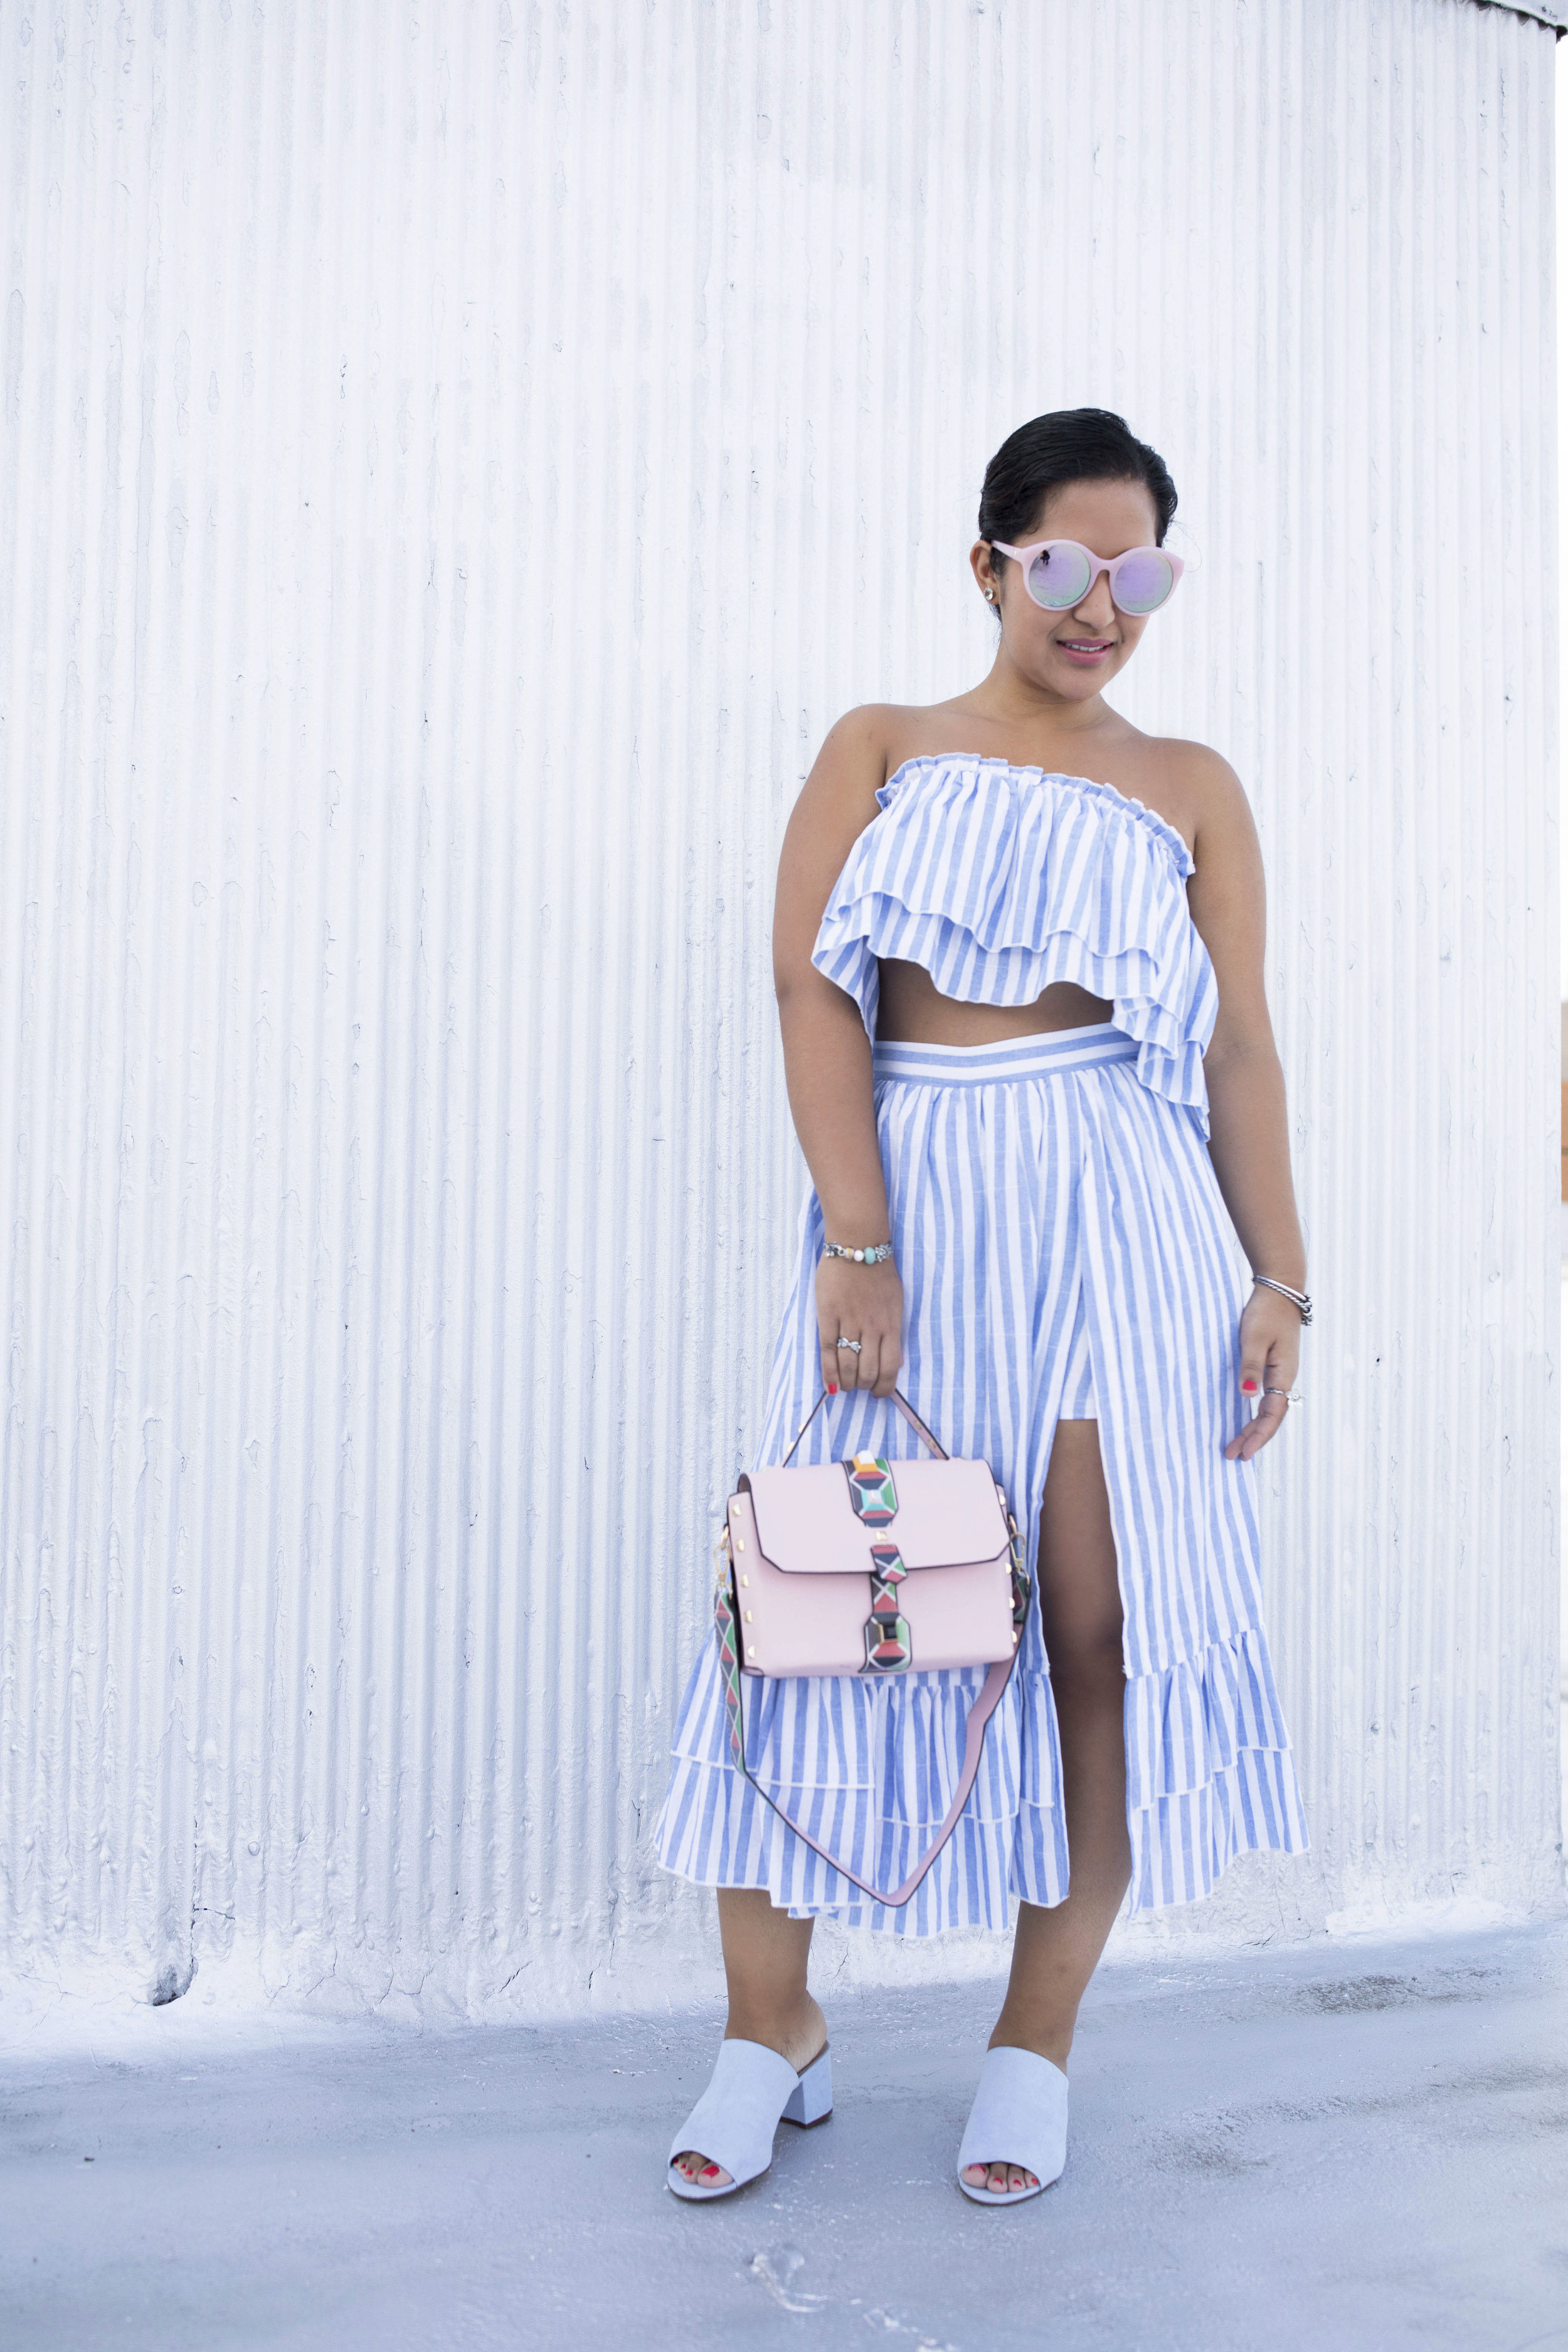 Krity S x SheIn x 2 piece stripped set4.jpg